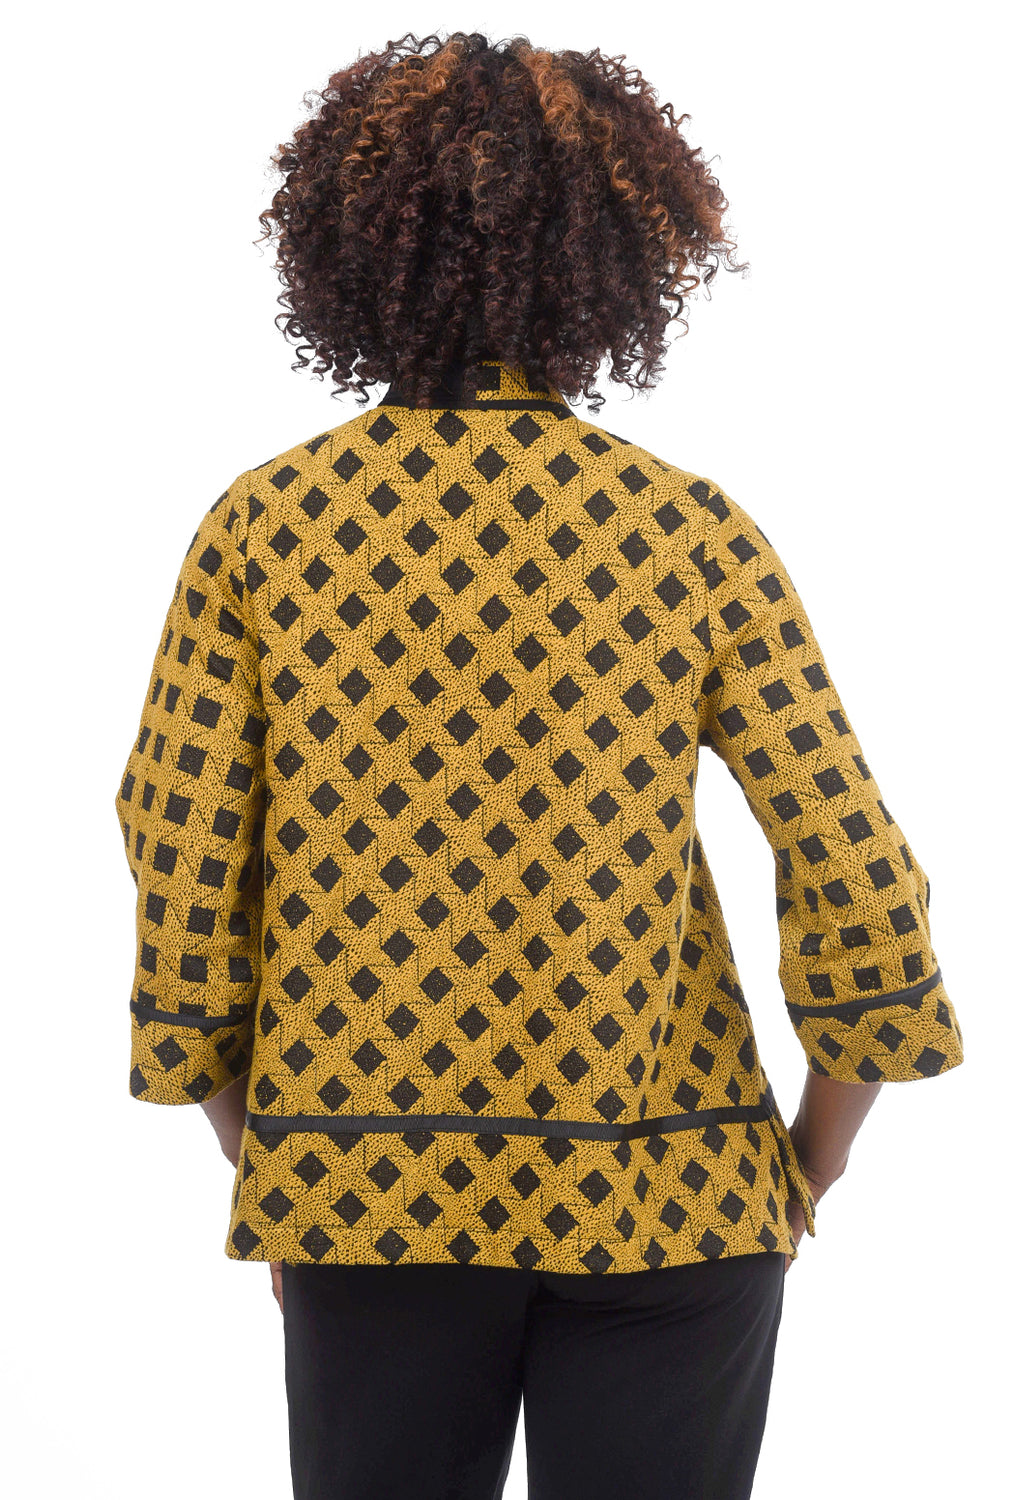 Moonlight Diamond Check Jacket, Mustard